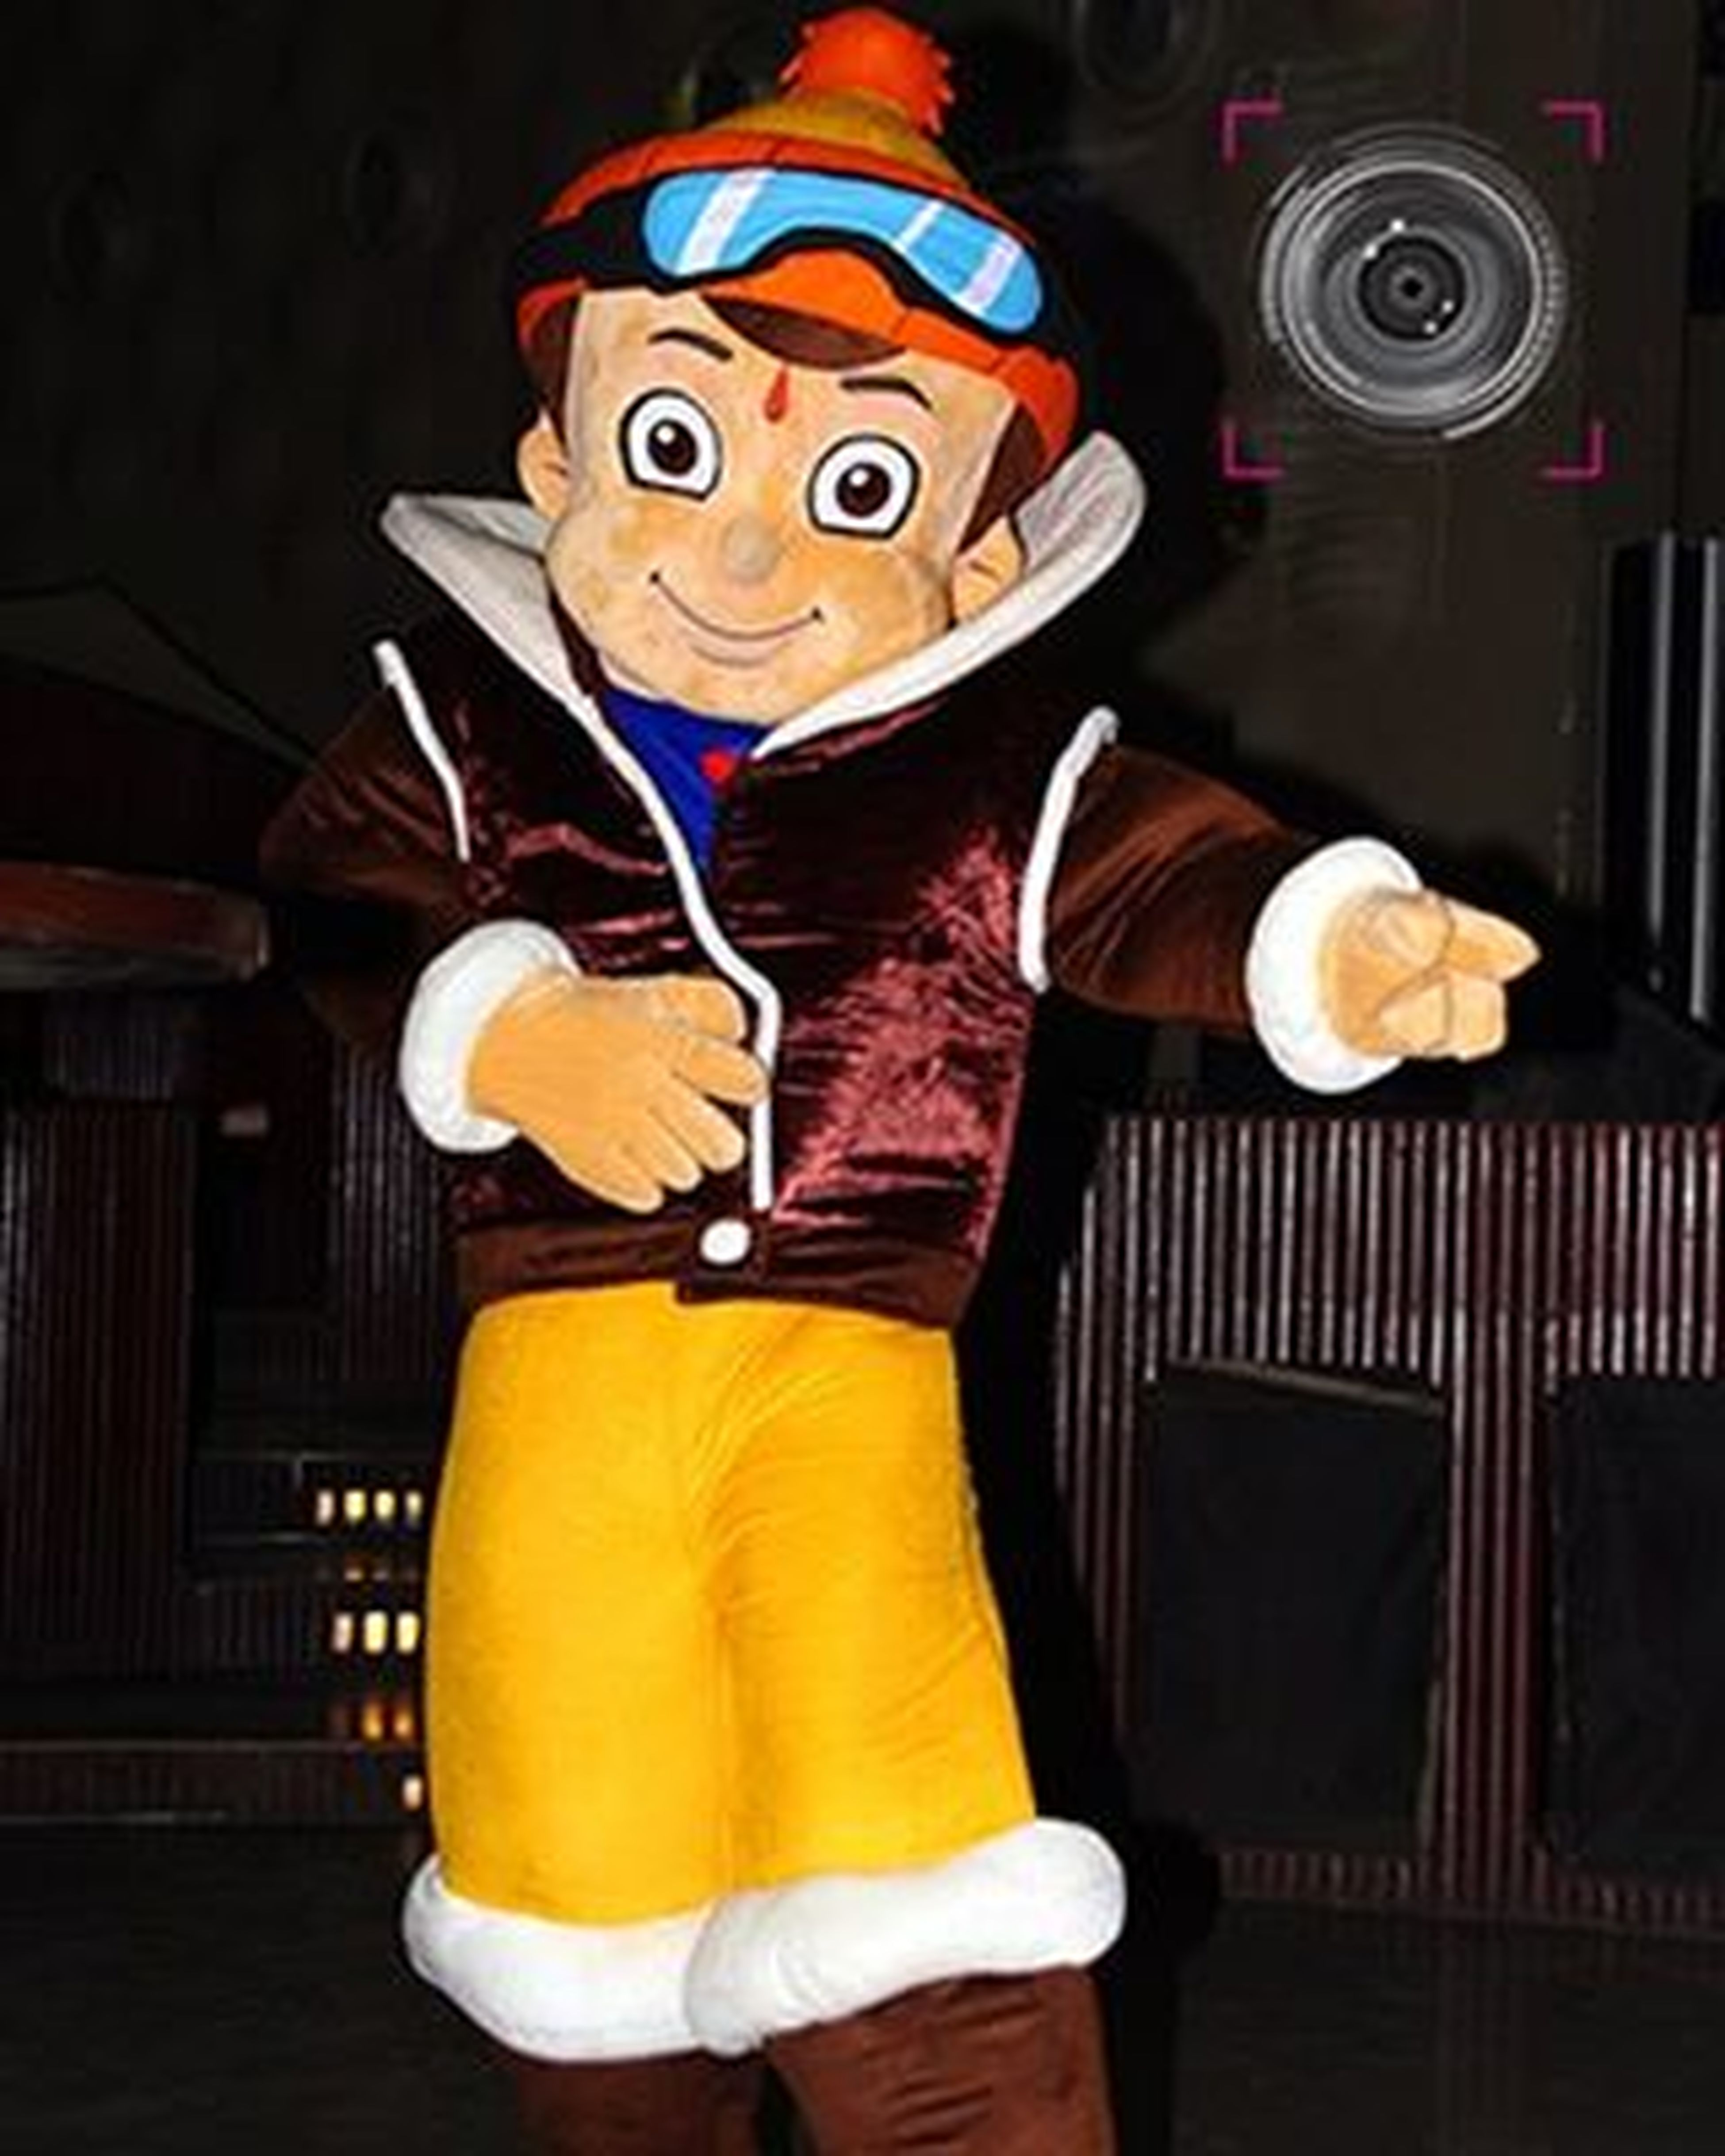 ~~~~~~~~~~~~~~~~~~~~~~~~~~~~~~~ 🗻CHHOTA BHEEM HIMALAYAN ADVENTURE🗻 ~~~~~~~~~~~~~~~~~~~~~~~~~~~~~~~ Chhota Bheem is a new upcoming bollywood animation movie releasing on 8th January 2016. It's one of the most awaited animated movies, full of action scenes and drama. According to the script, Chhota Bheem and his friends set out for a vacation to Manali where they intend to play adventurous sports in the snow clad mountains of Himalayas. In Manali, the powerful and conniving Hidimbak has an evil master plan to loot the kingdom and usurp the throne. He is ably assisted by his smart nephew Ghatto and group of strong goons. ~~~~~~~~~~~~~~~~~~~~~~~~~~~~~~~ Check out their site www.chhotabheem.com ~~~~~~~~~~~~~~~~~~~~~~~~~~~~~~~ ChhotaBheem MOVIE Bollywood Animation Manali Himalayas Adventurous Action Drama Chhotabheemhimalayanadventure Greengoldpictures Snow Sports TheblueFROG Indiblogger FlipkartKids